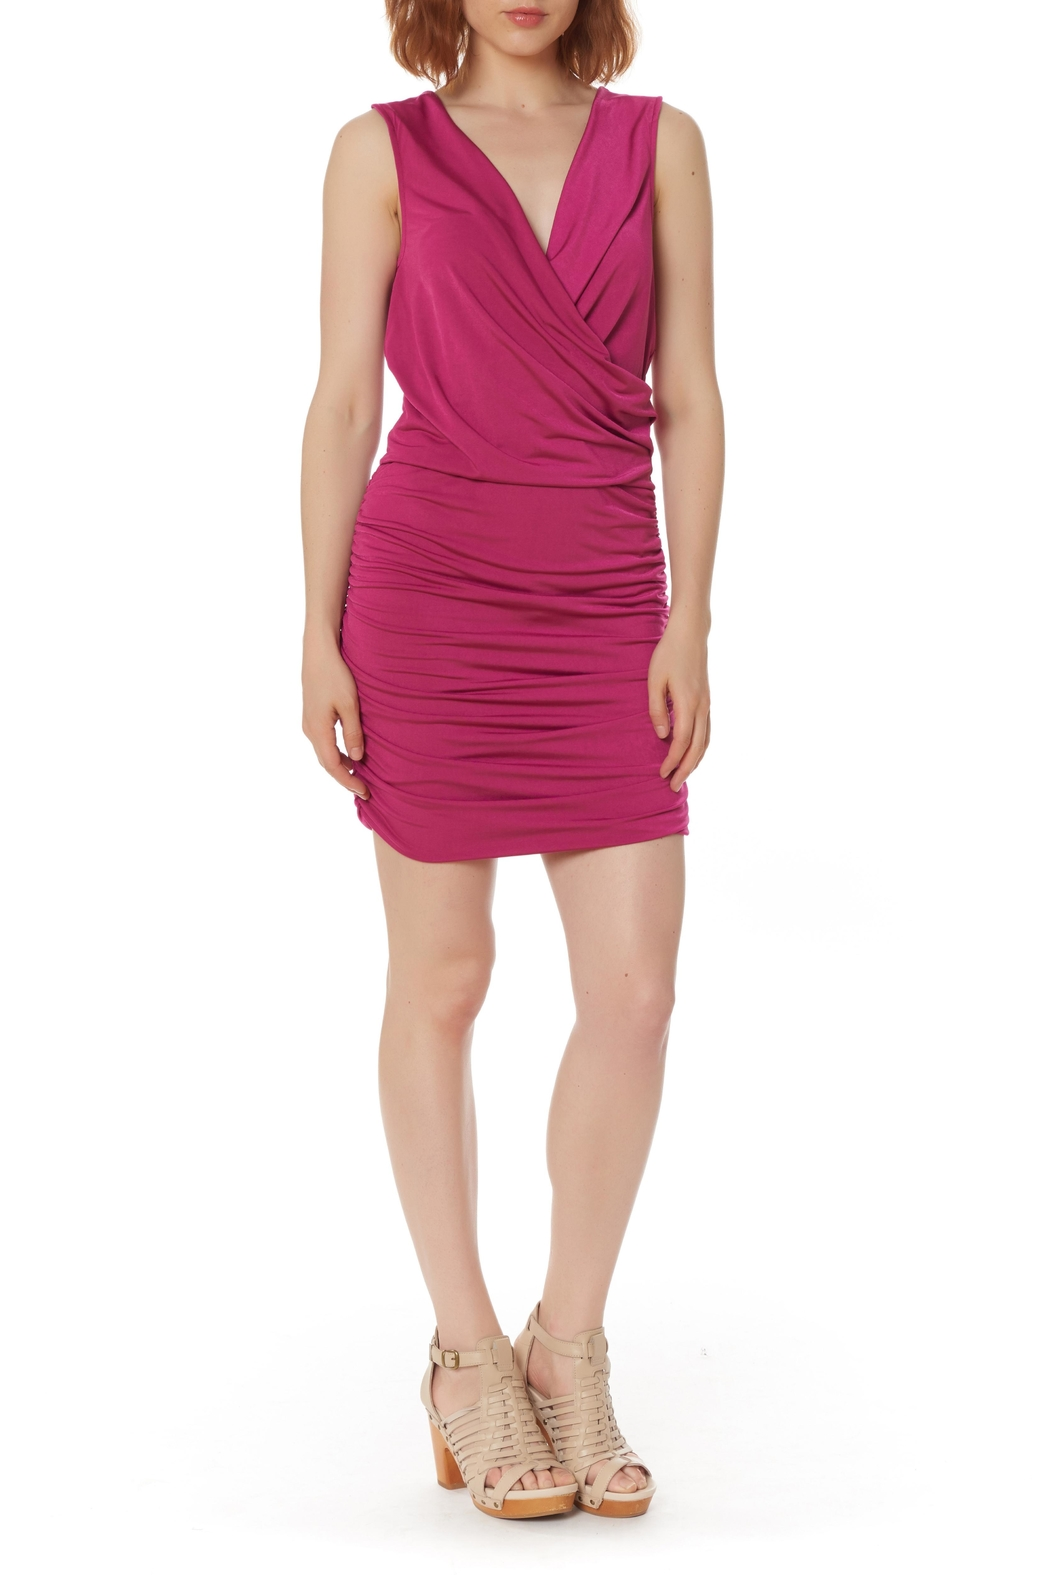 Bobi Los Angeles Shirred Side Dress - Side Cropped Image